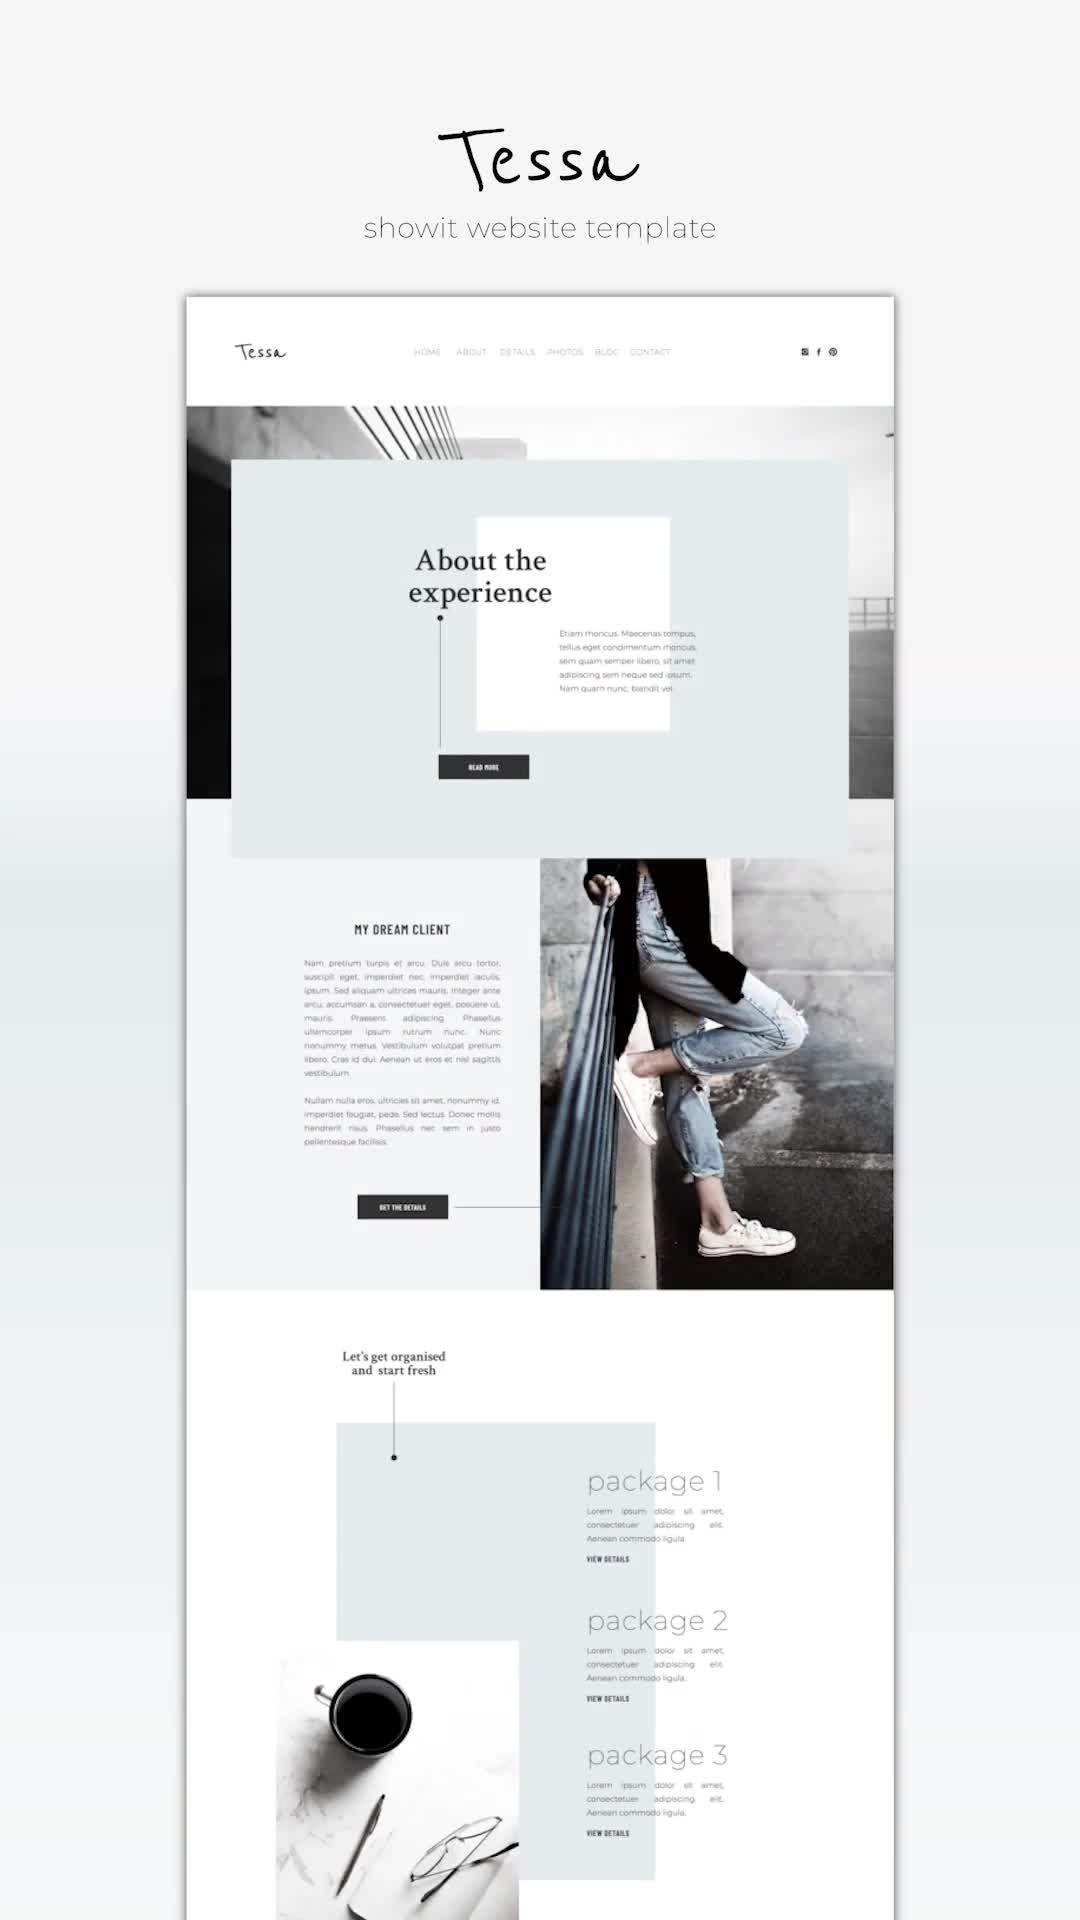 Showit website template design Tessa with shop layout for the professional creative minimalist